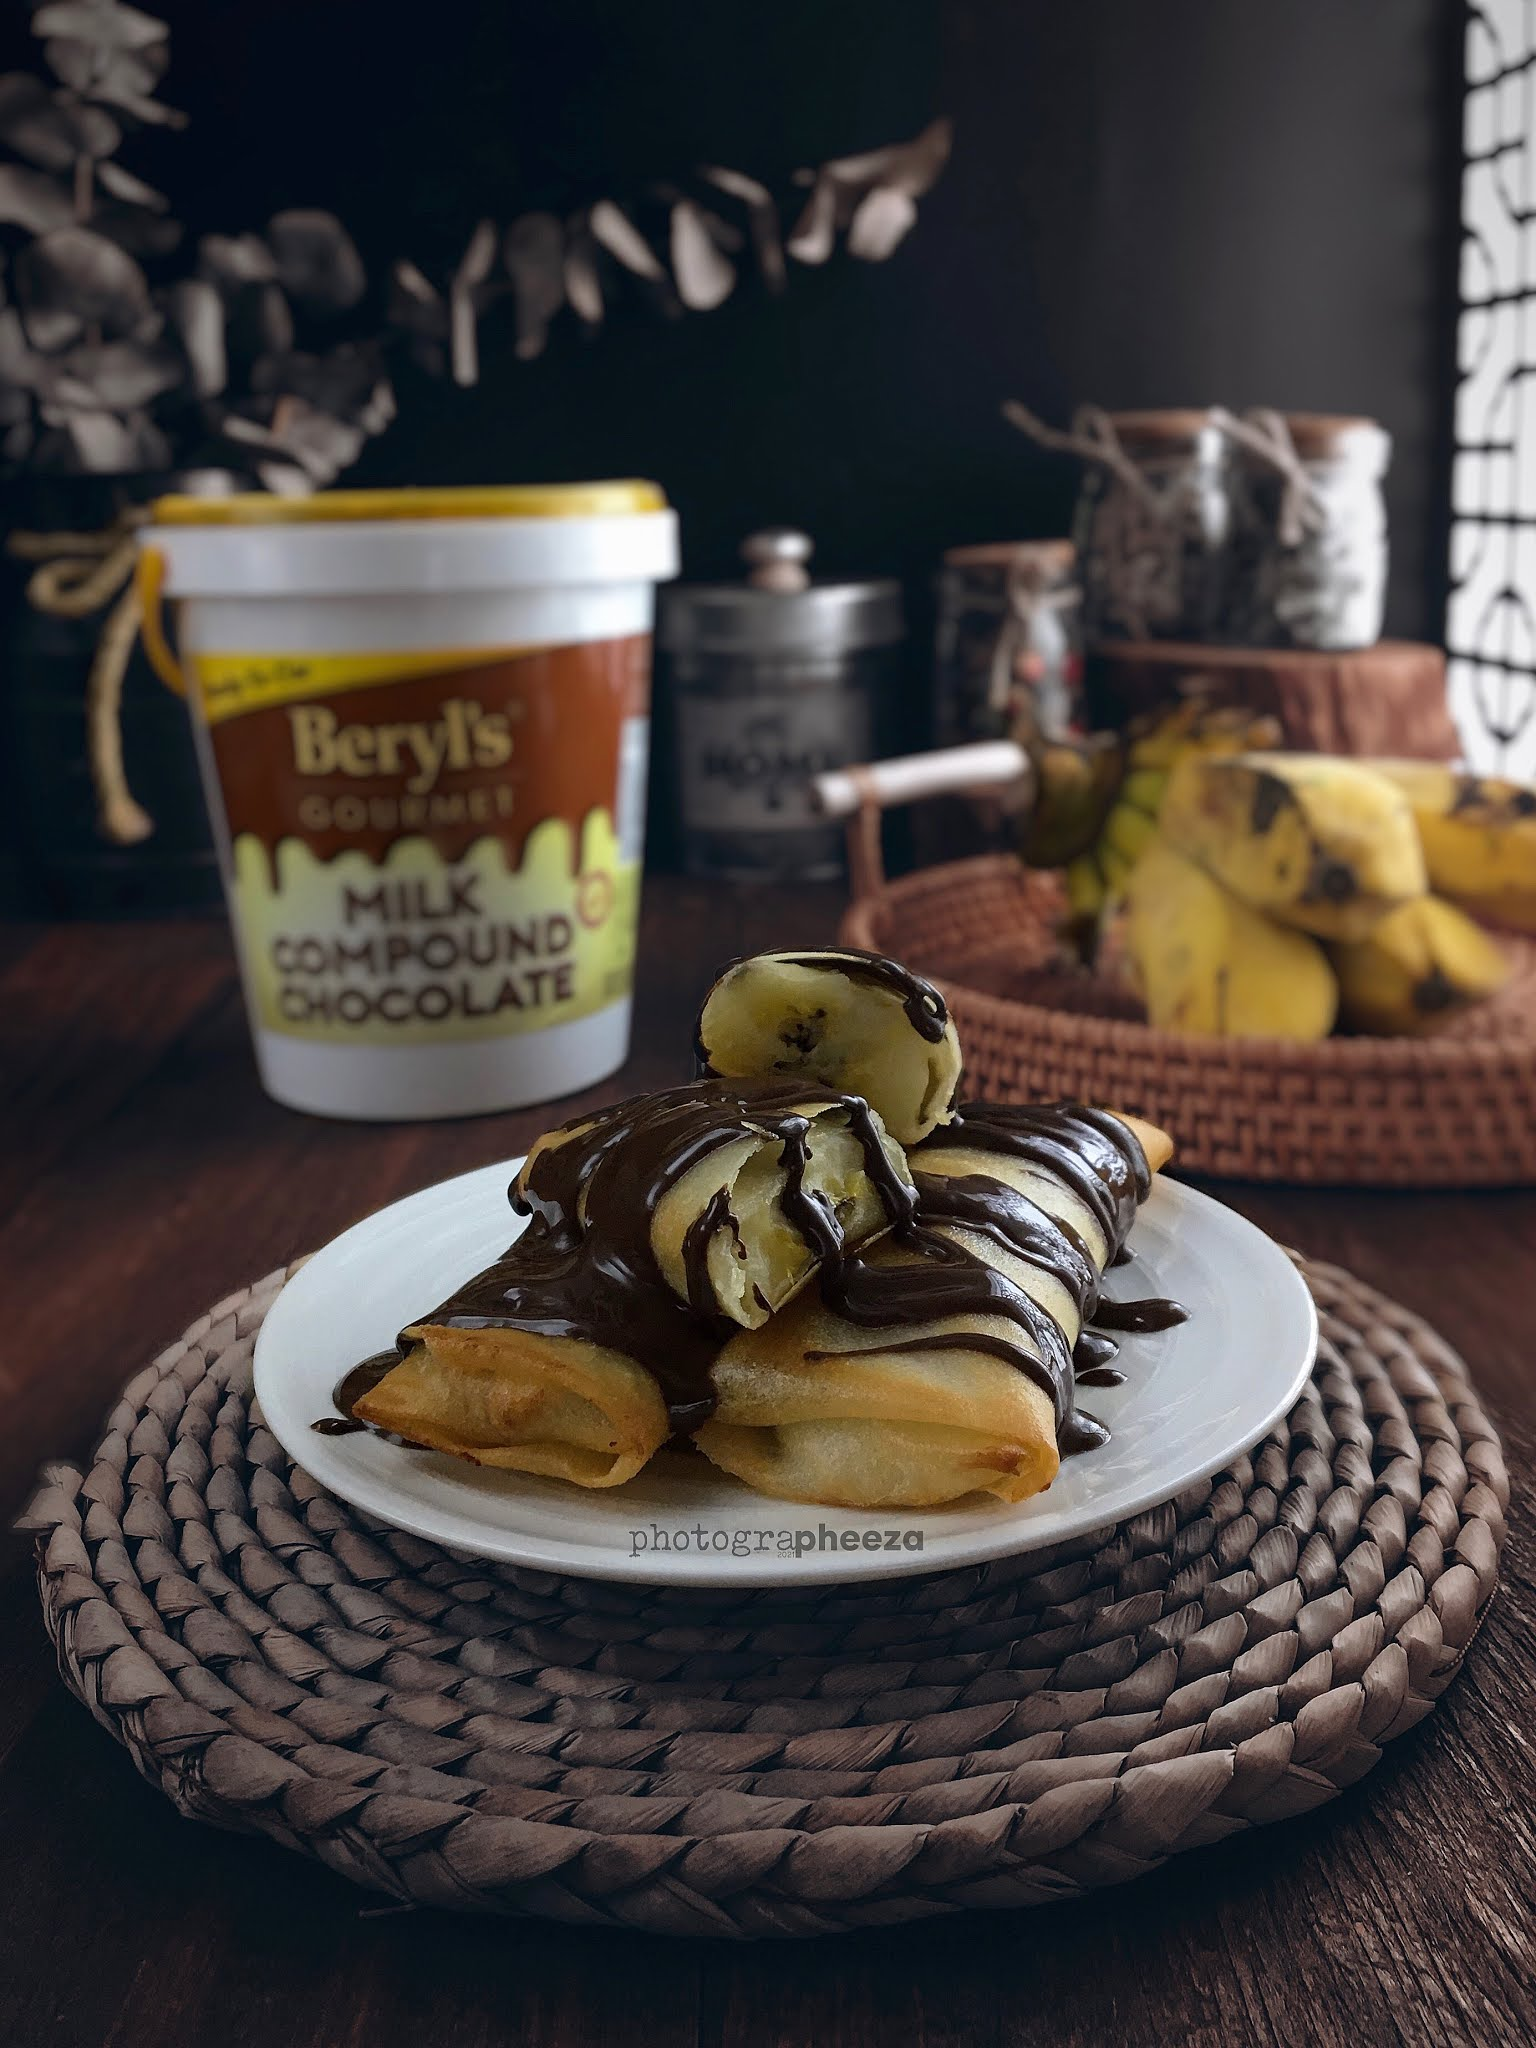 Resipi Popis (Banana Roll) Topping Chocolate